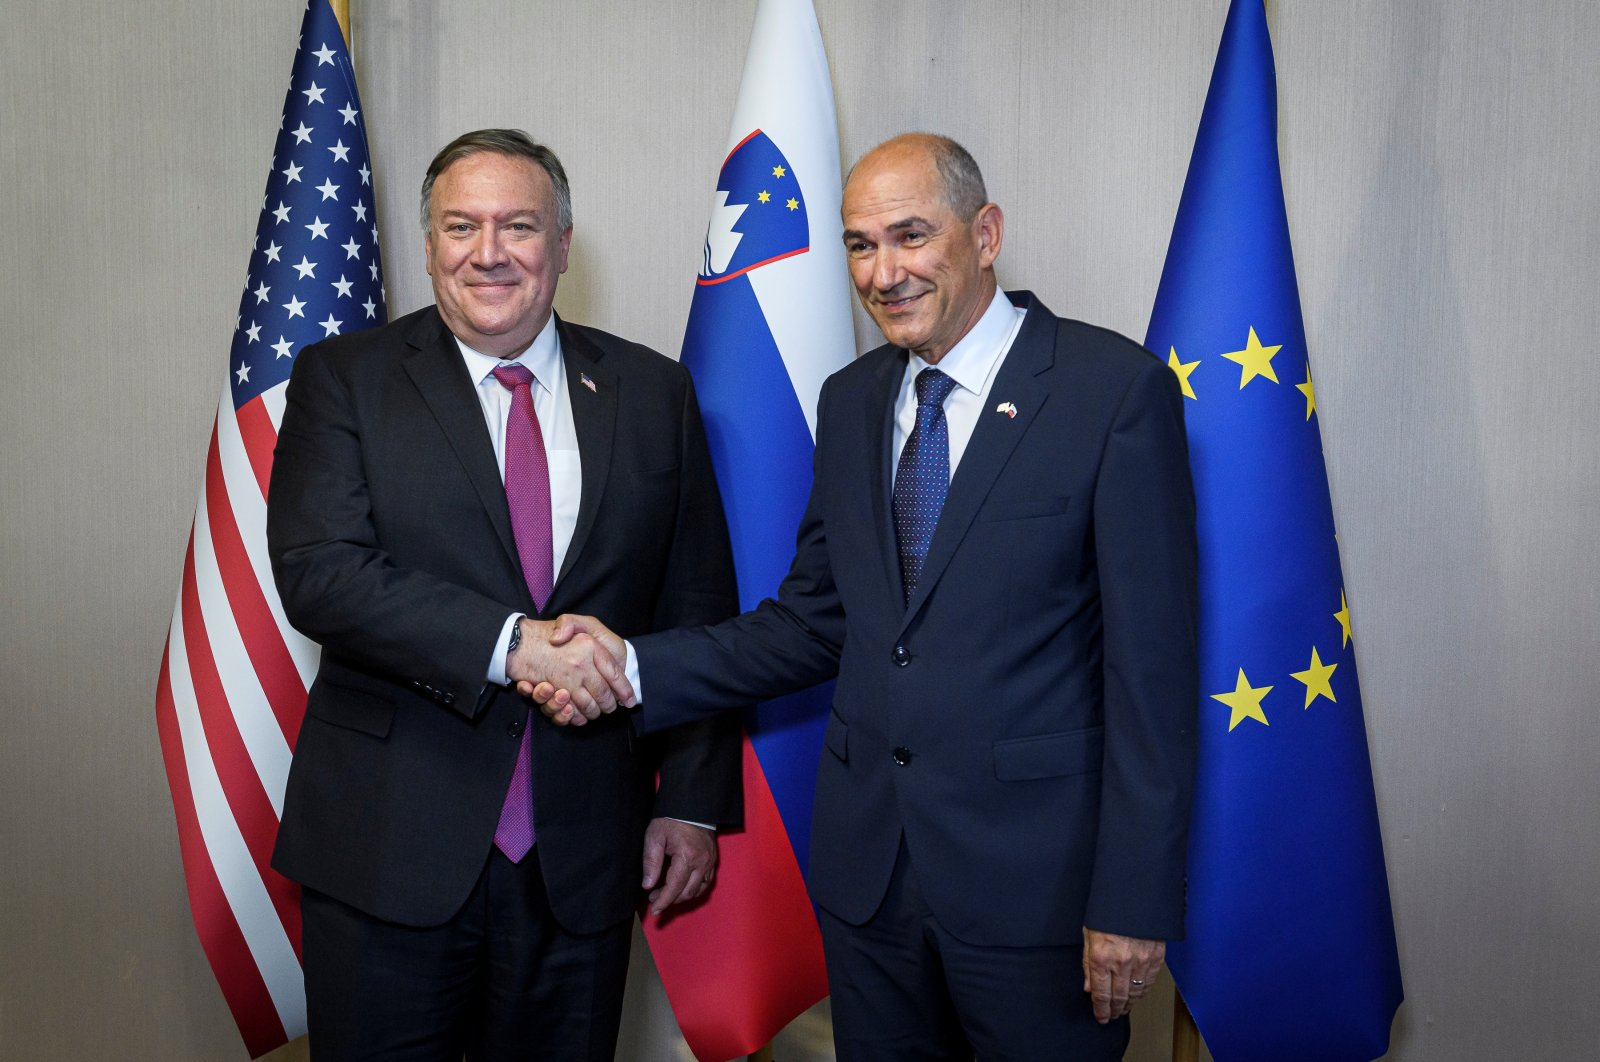 Slovenian Prime Minister Janez Jansa (R) shakes hands with U.S. Secretary of State Mike Pompeo ahead of their meeting in Bled, Slovenia, during Pompeo's four-nation visit to Central Europe, Aug. 13, 2020. (Reuters Photo)